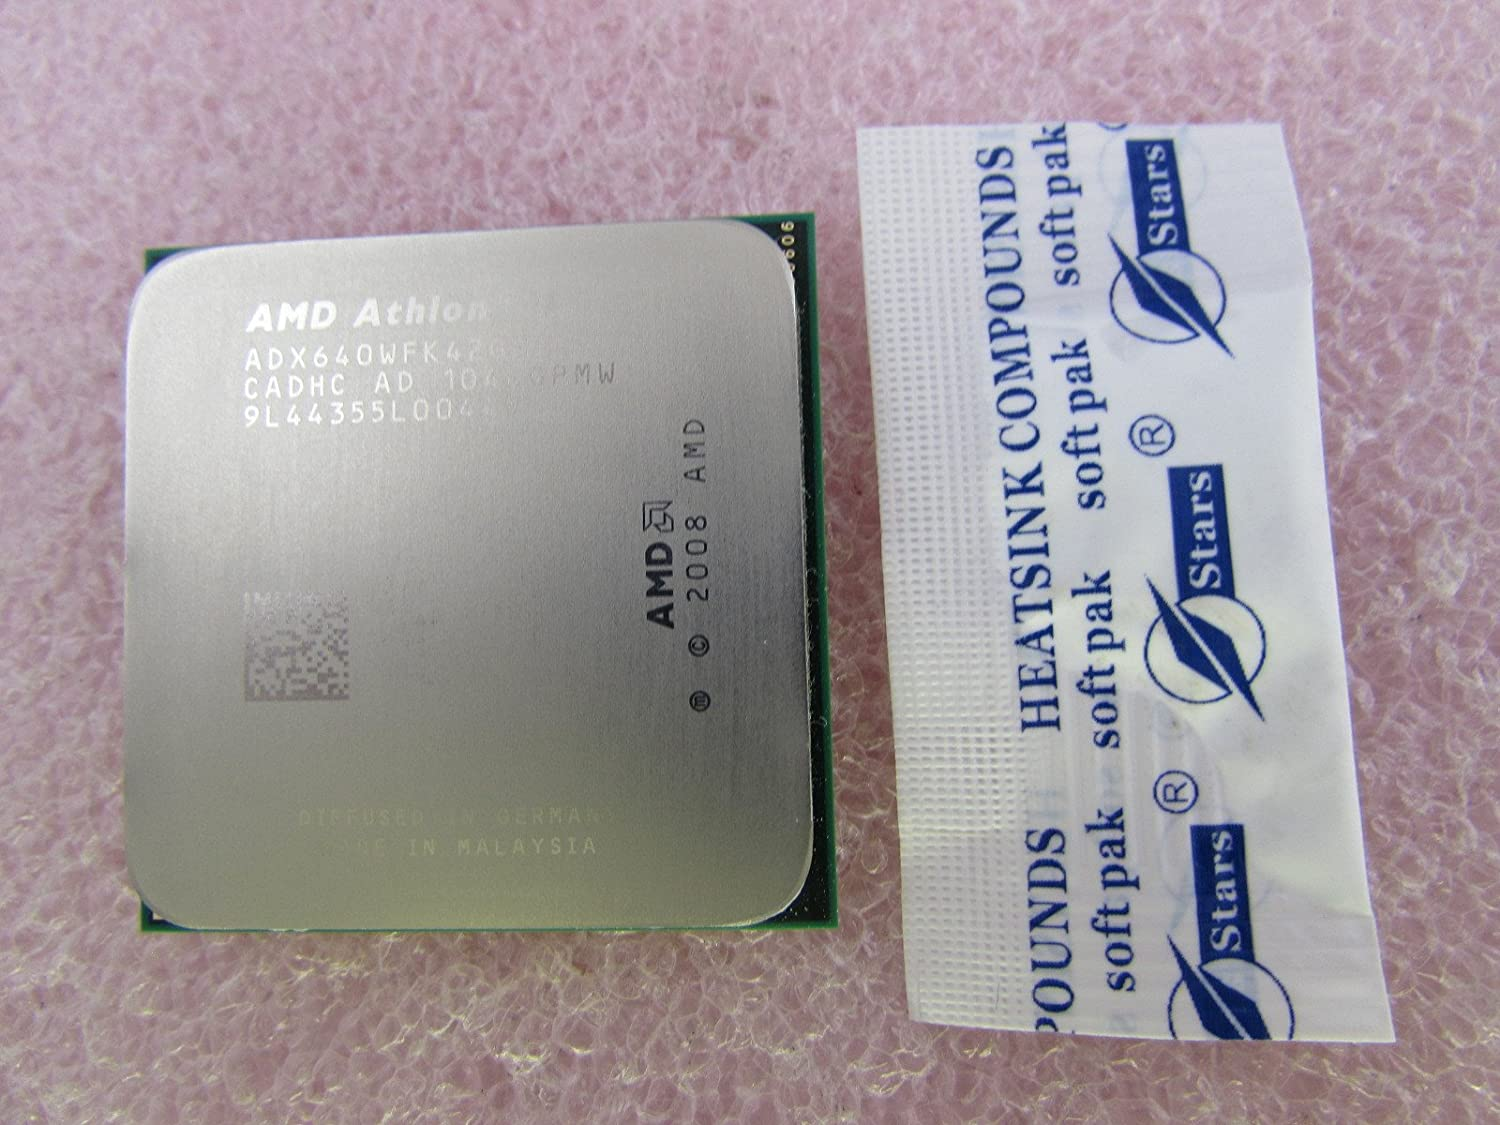 AMD ADX640WFK42GM Athlon II X4 640 3.00GHz Socket AM2+//AM3 Propus CPU Processor